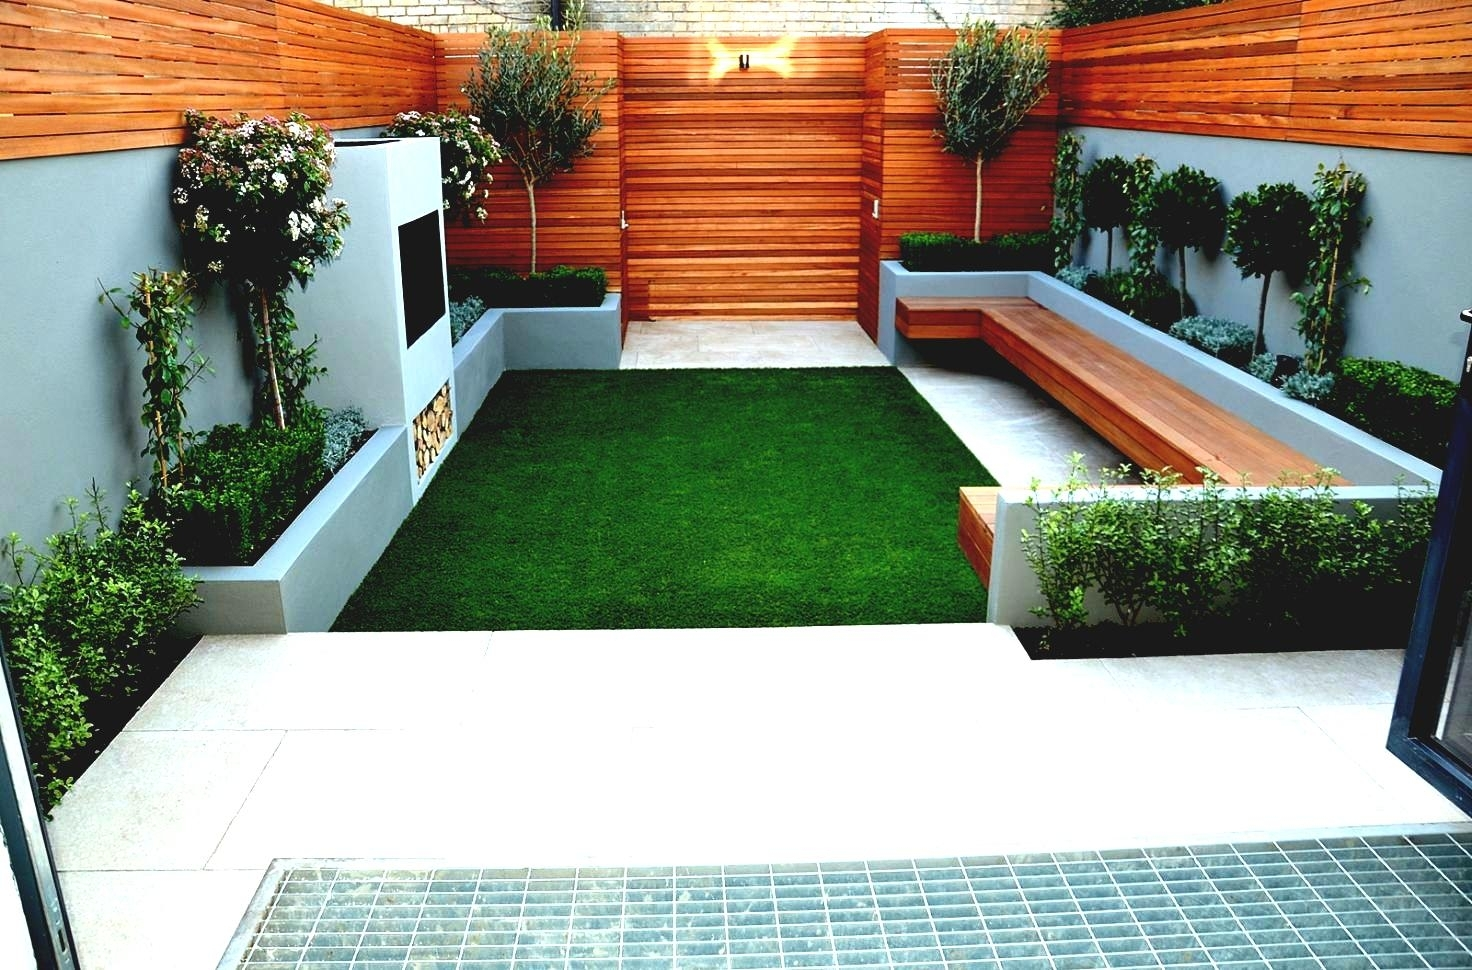 Paving ideas for small back gardens garden design for Back garden plans